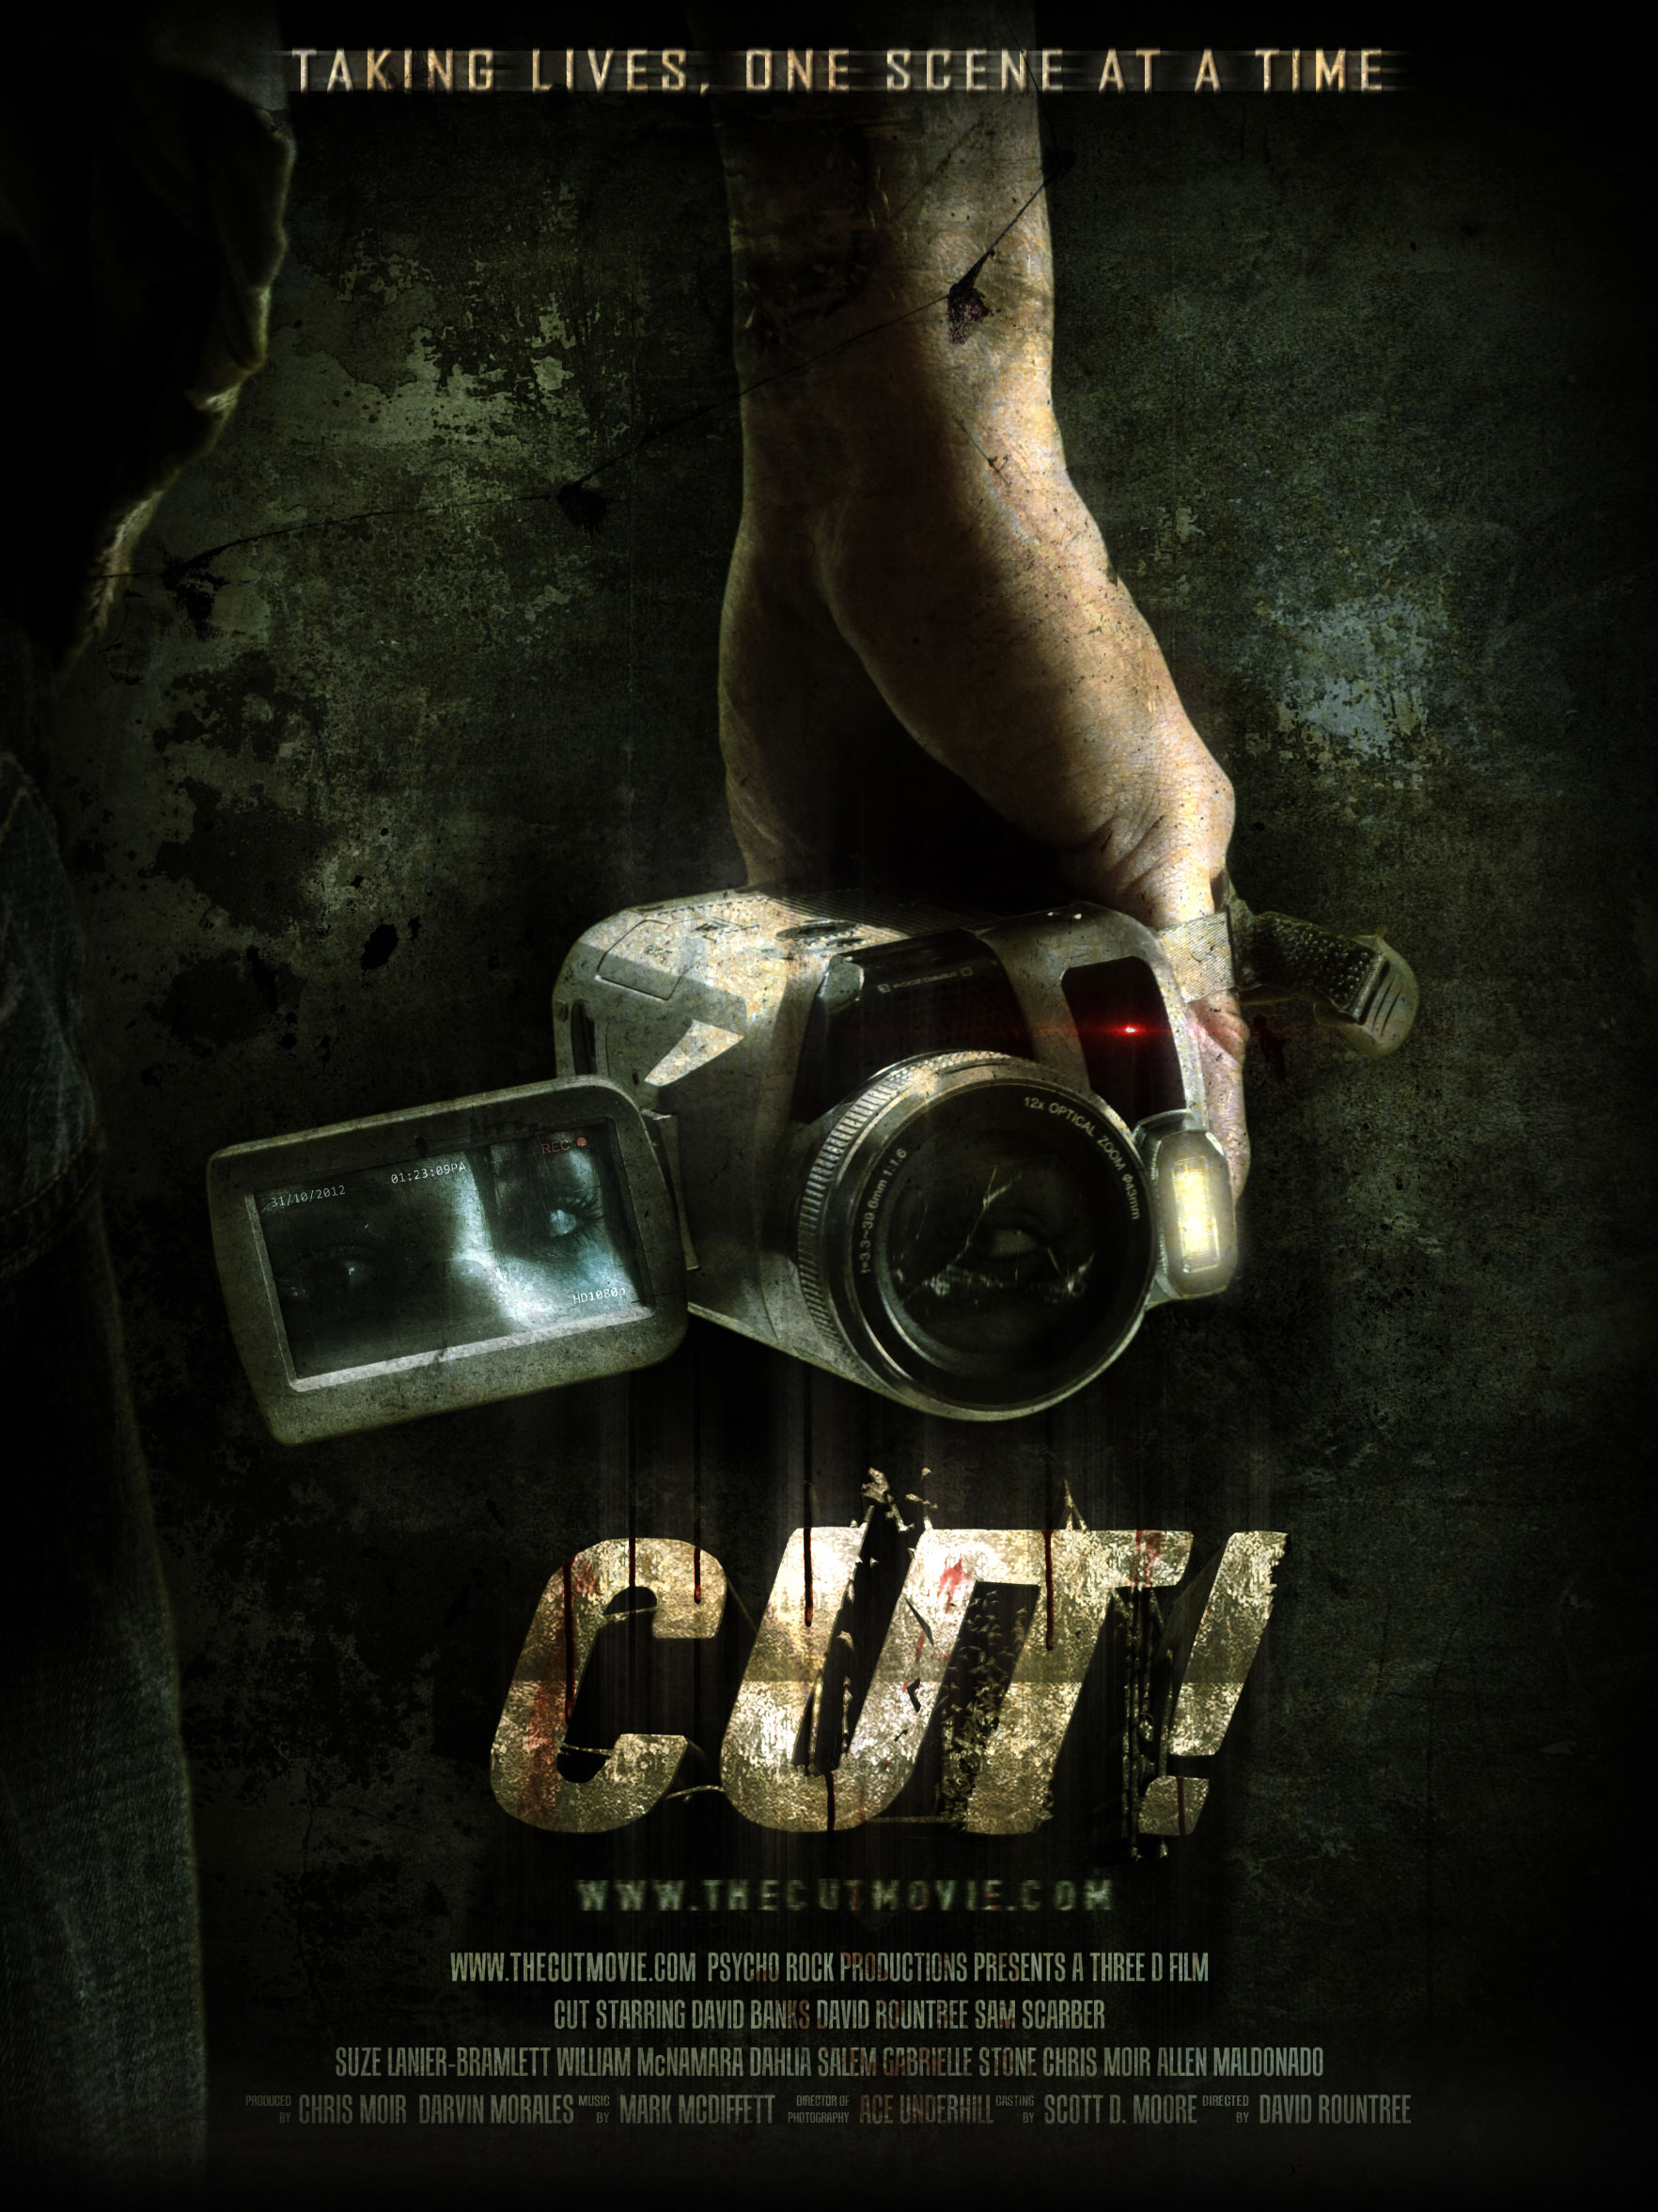 cut poster 1 - Get CUT! on Friday the 13th